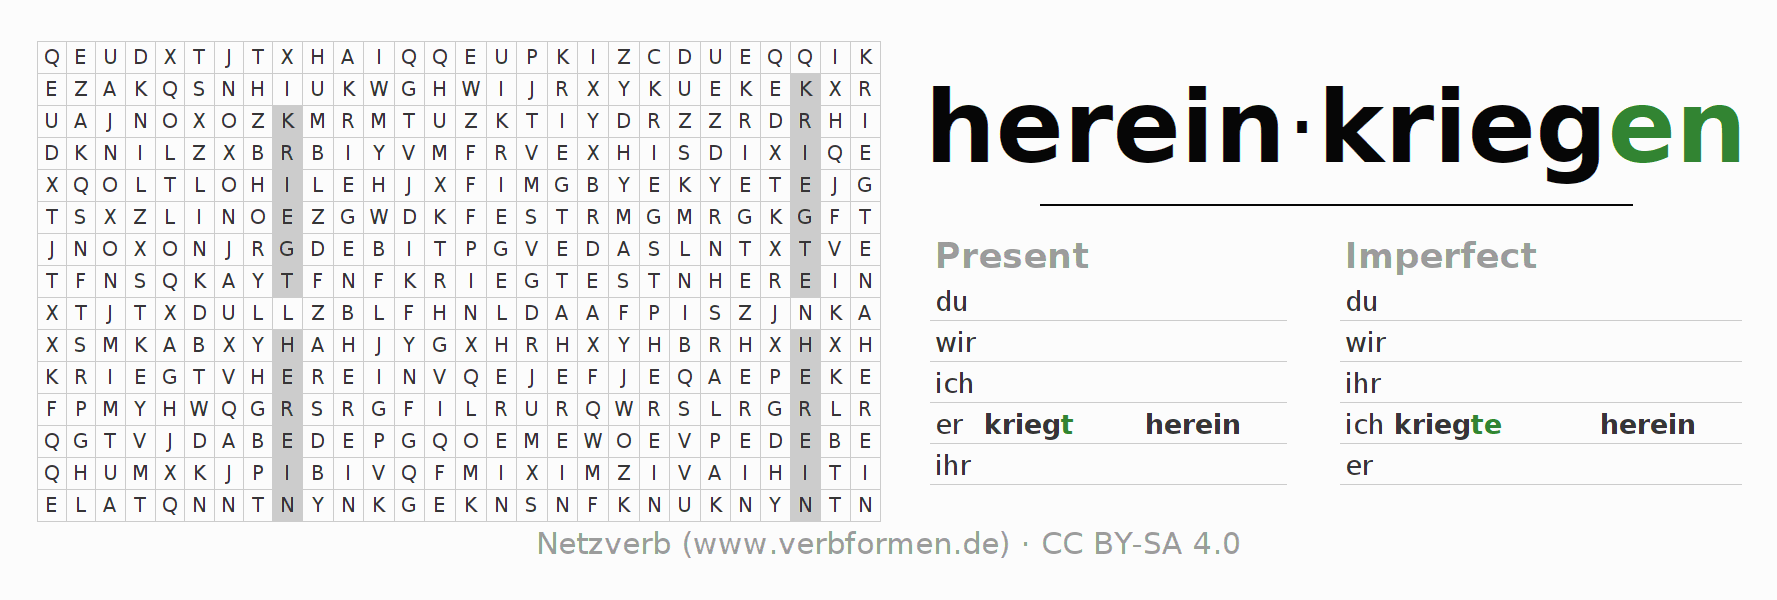 Word search puzzle for the conjugation of the verb hereinkriegen